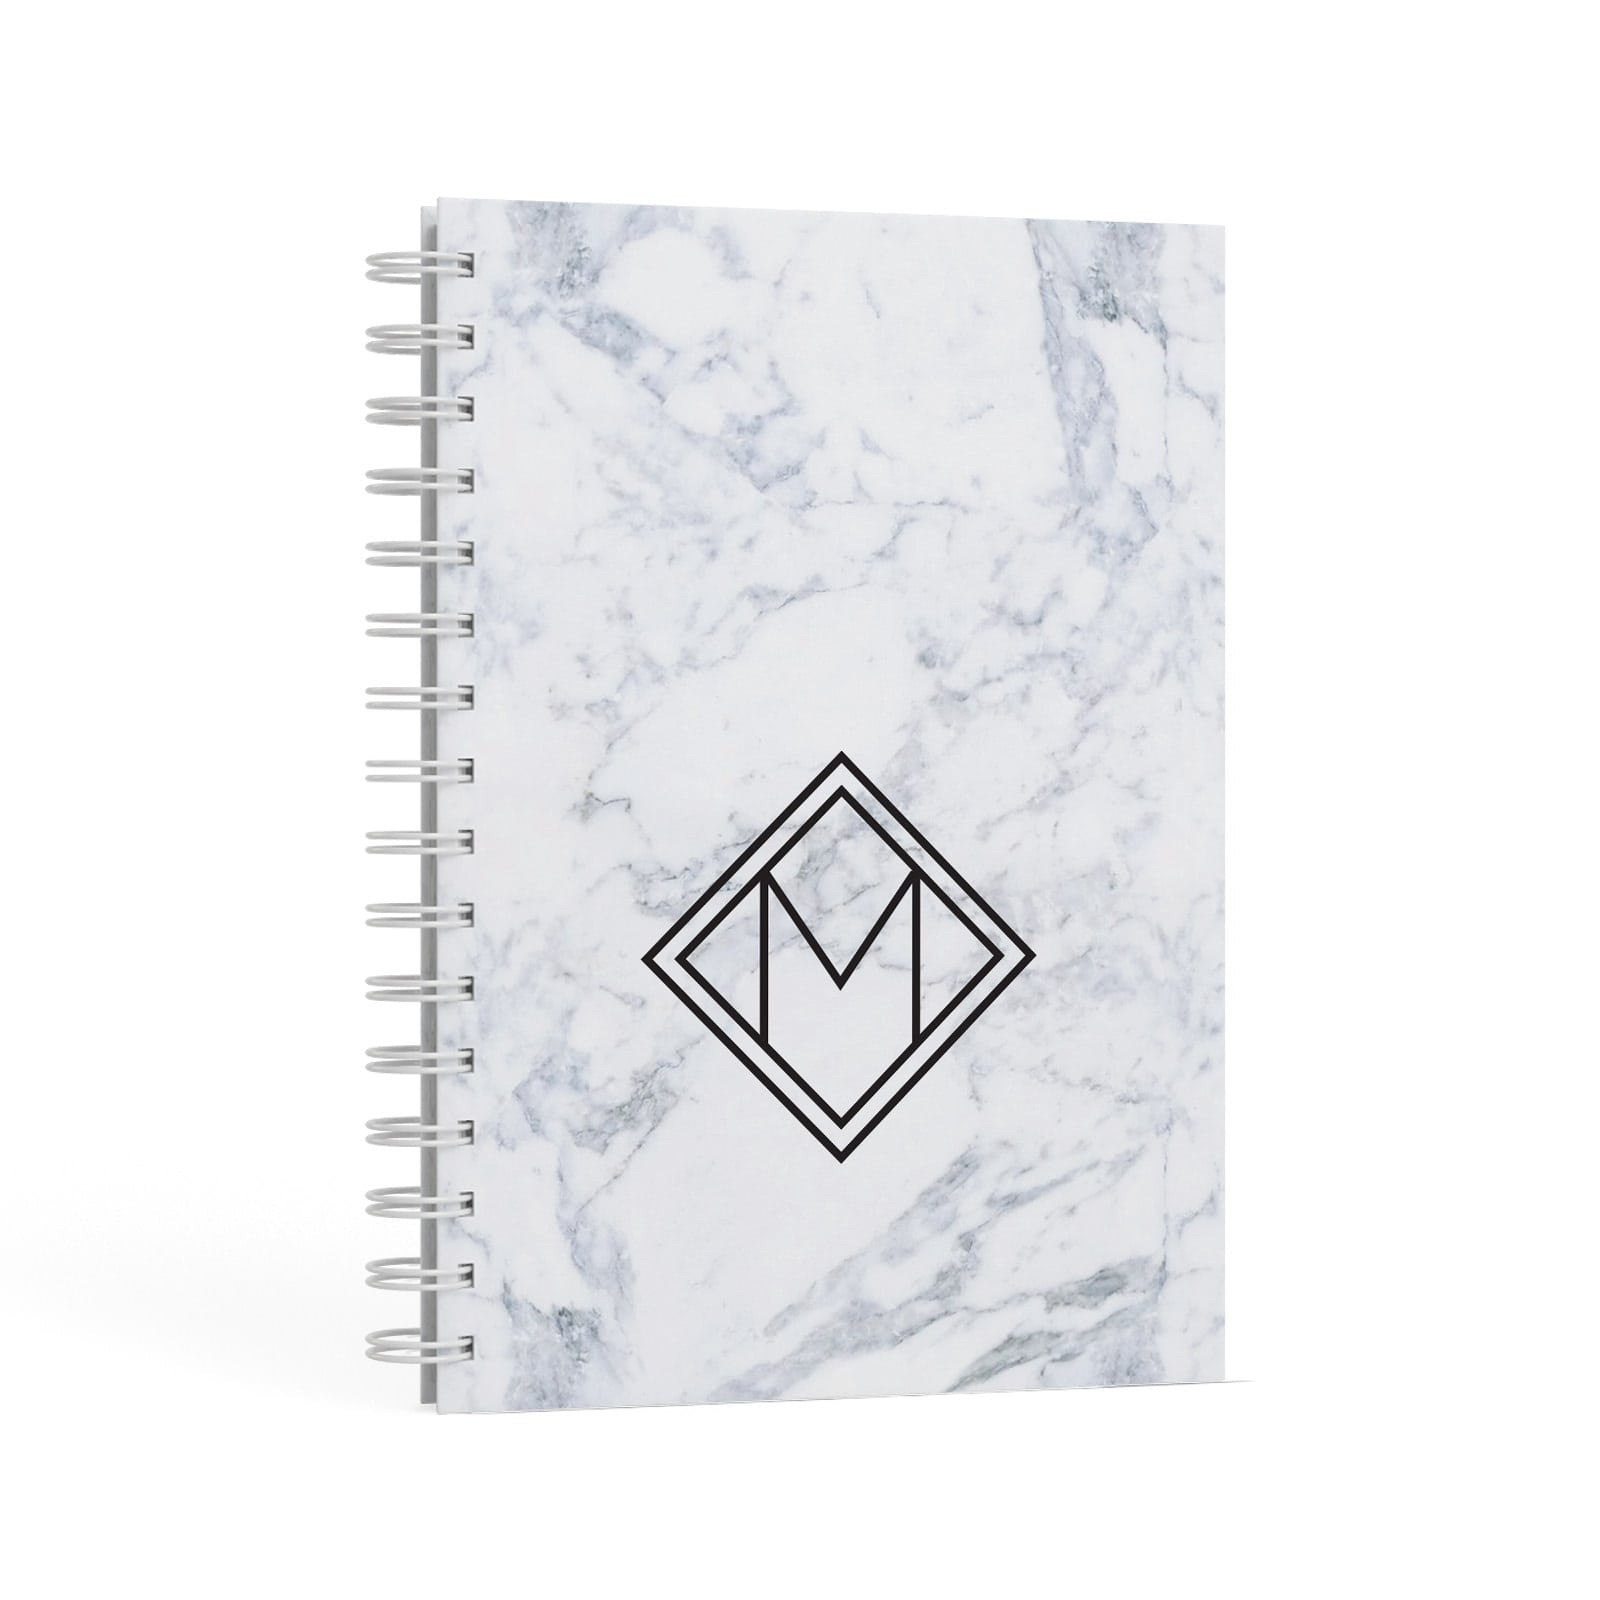 Personalised Marble Customised Initials A5 Hardcover Notebook Second Side View